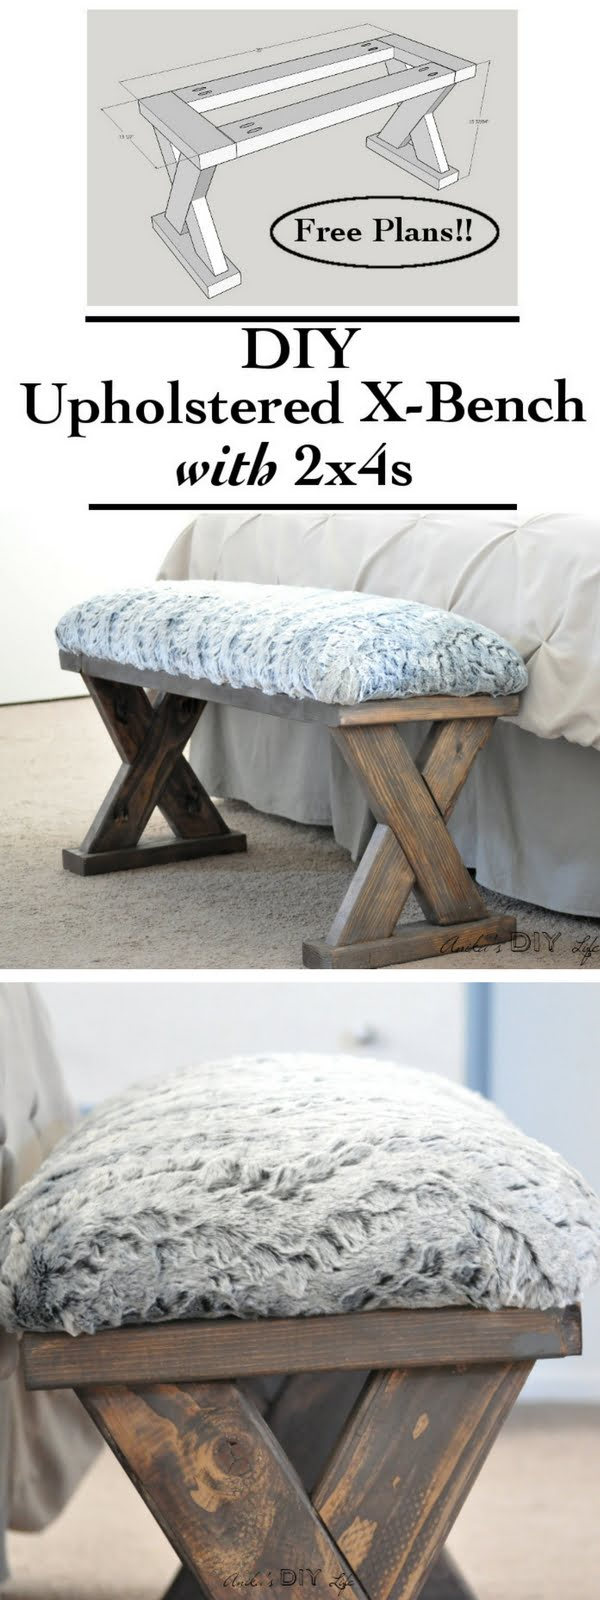 Check out the tutorial on how to make a DIY upholstered bench